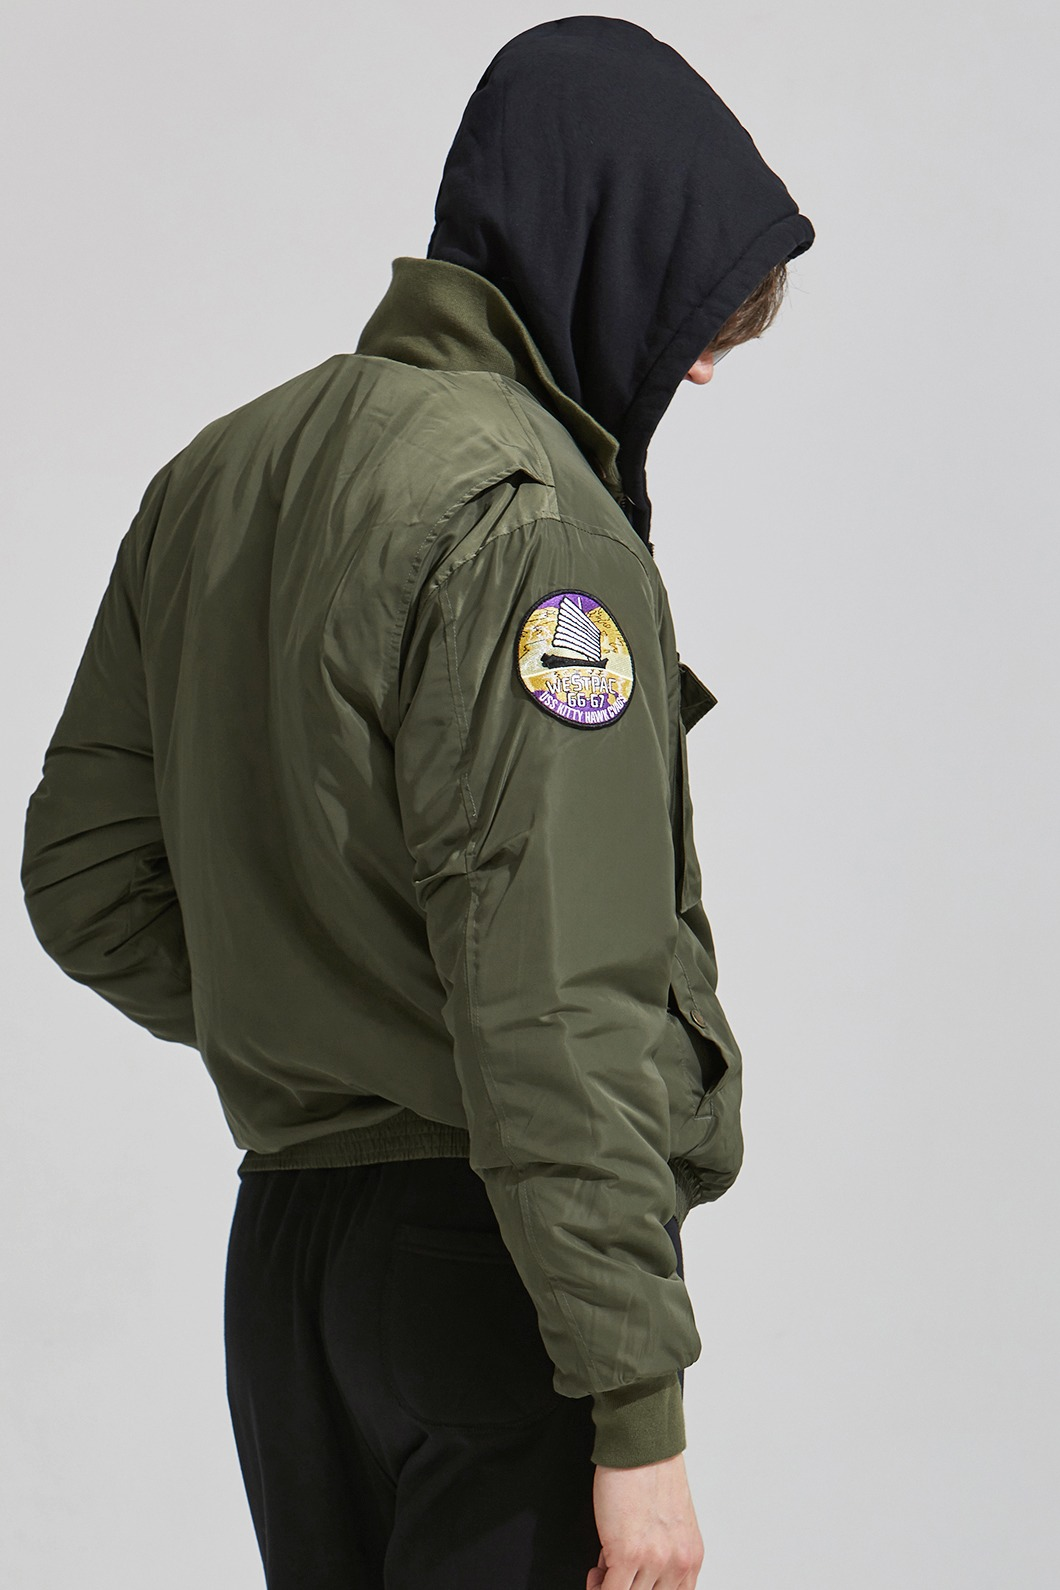 G.P Flight Patched G-8 Wep jacket-Khaki